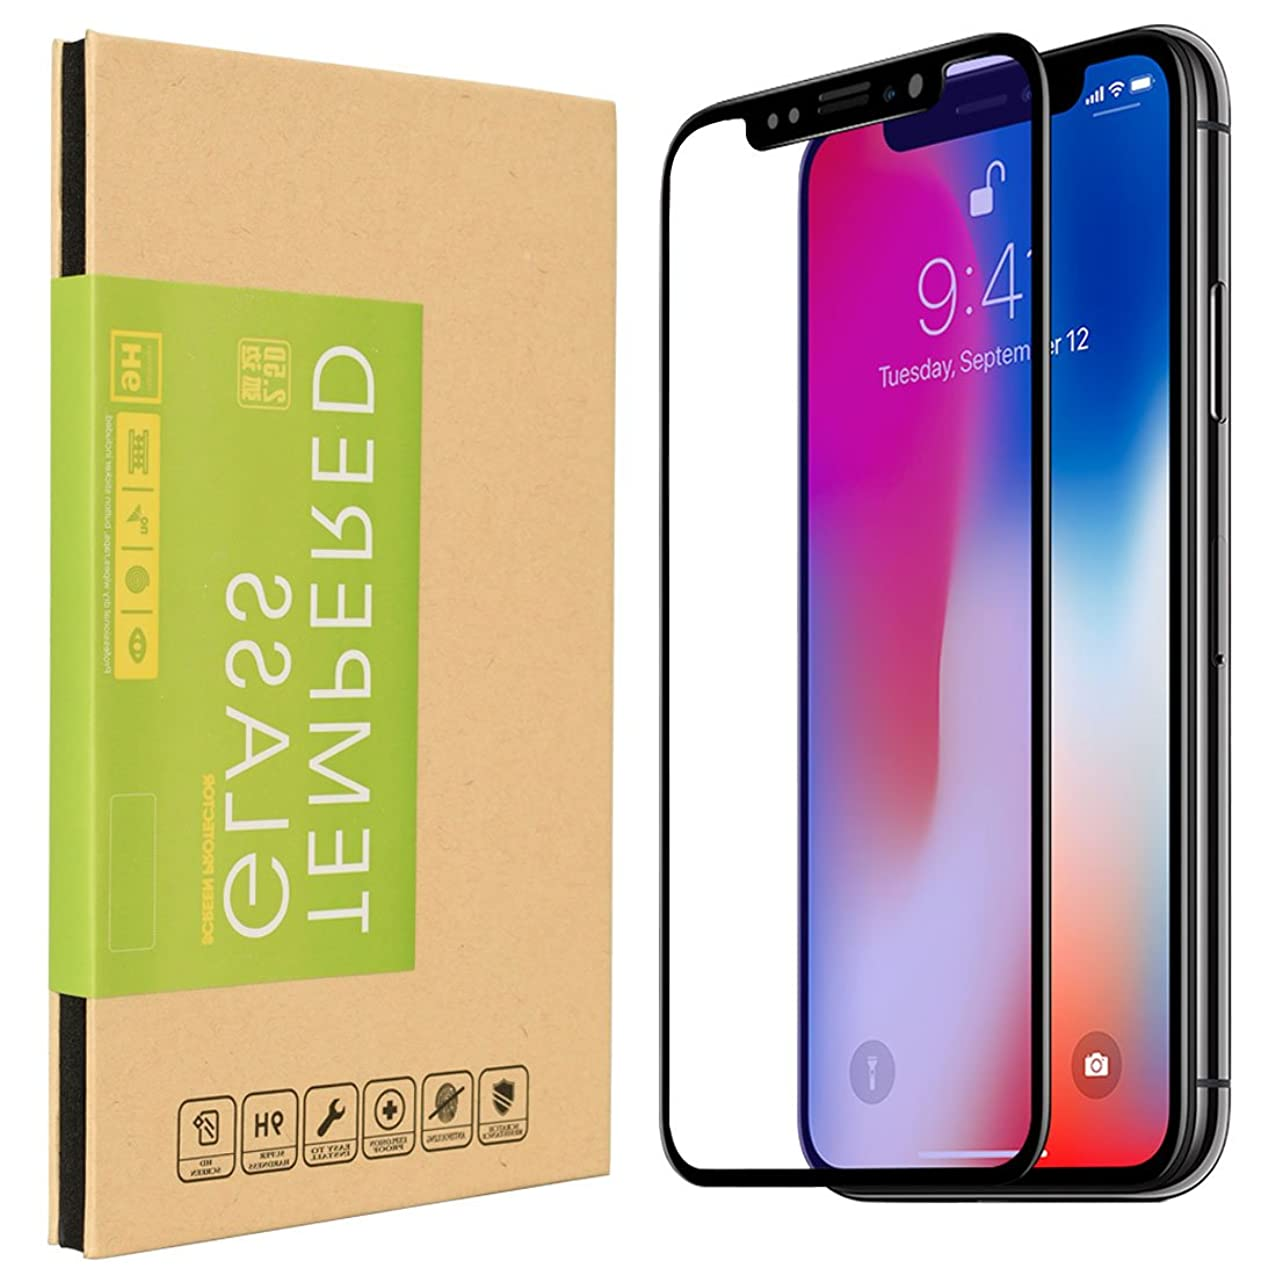 iPhone X Screen Protector, 2-Pack 3D Full Cover 9H Hardness 0.3MM Slim [Bubble Free] [Ultra Clear] [Scratch Proof] [Case Friendly] Premium Tempered Glass for iPhone X 10 [Black Edge] ynsvzhcvcseyy981